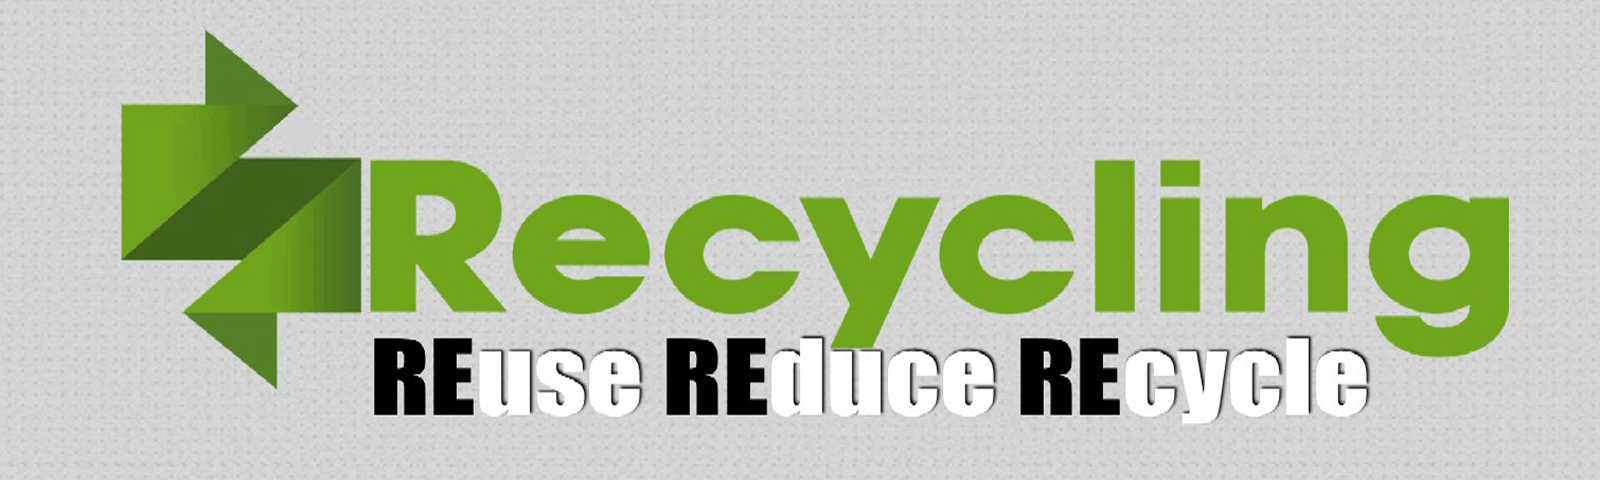 West-Bromwich-recycling-waste-1-1